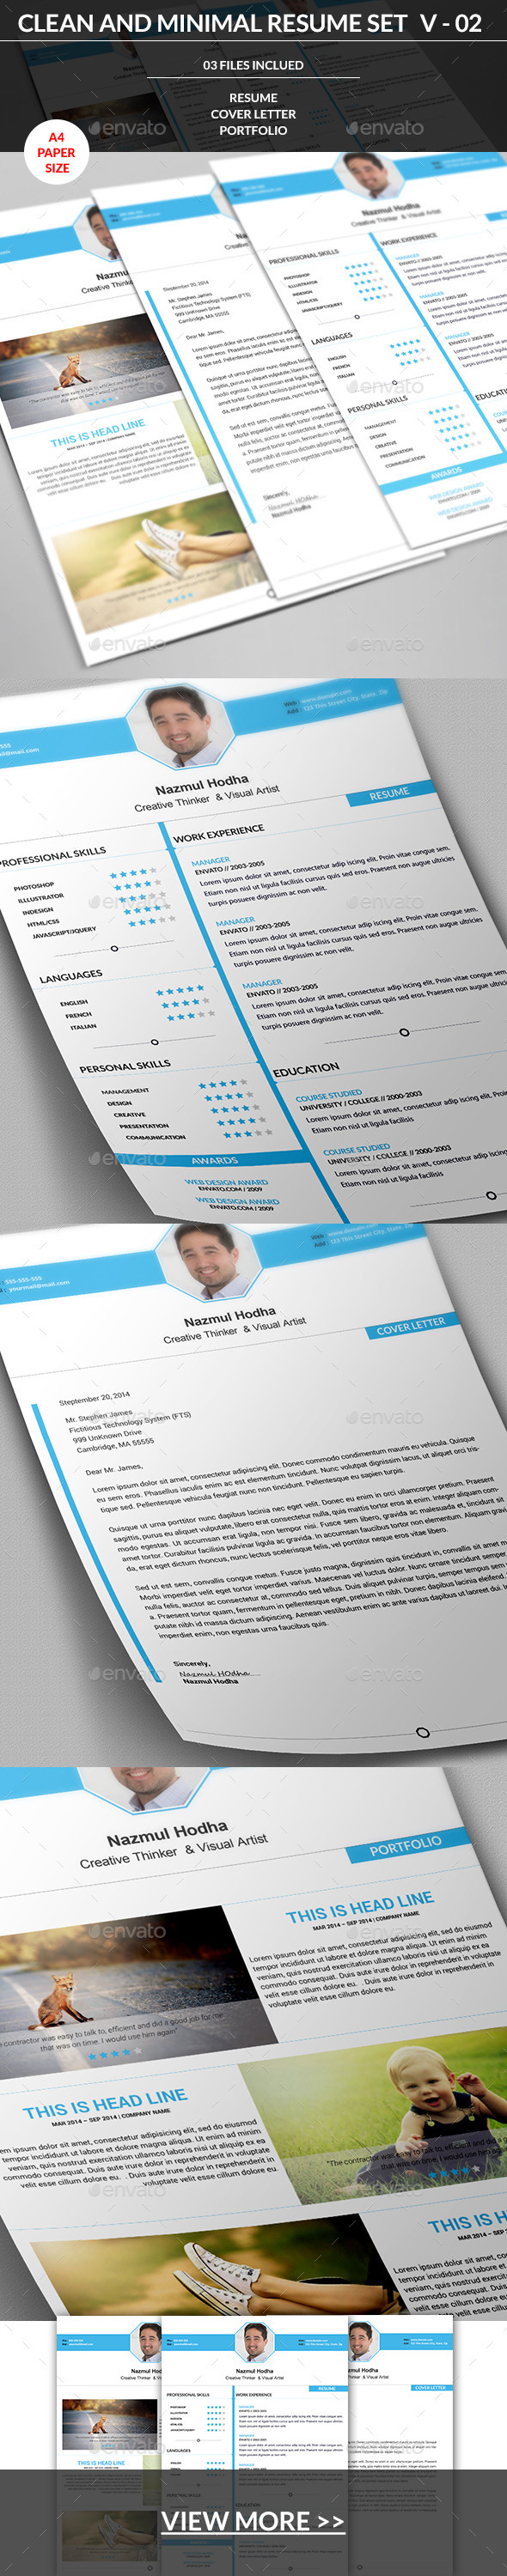 GraphicRiver Clean and Minimal Resume Set V-02 8962326